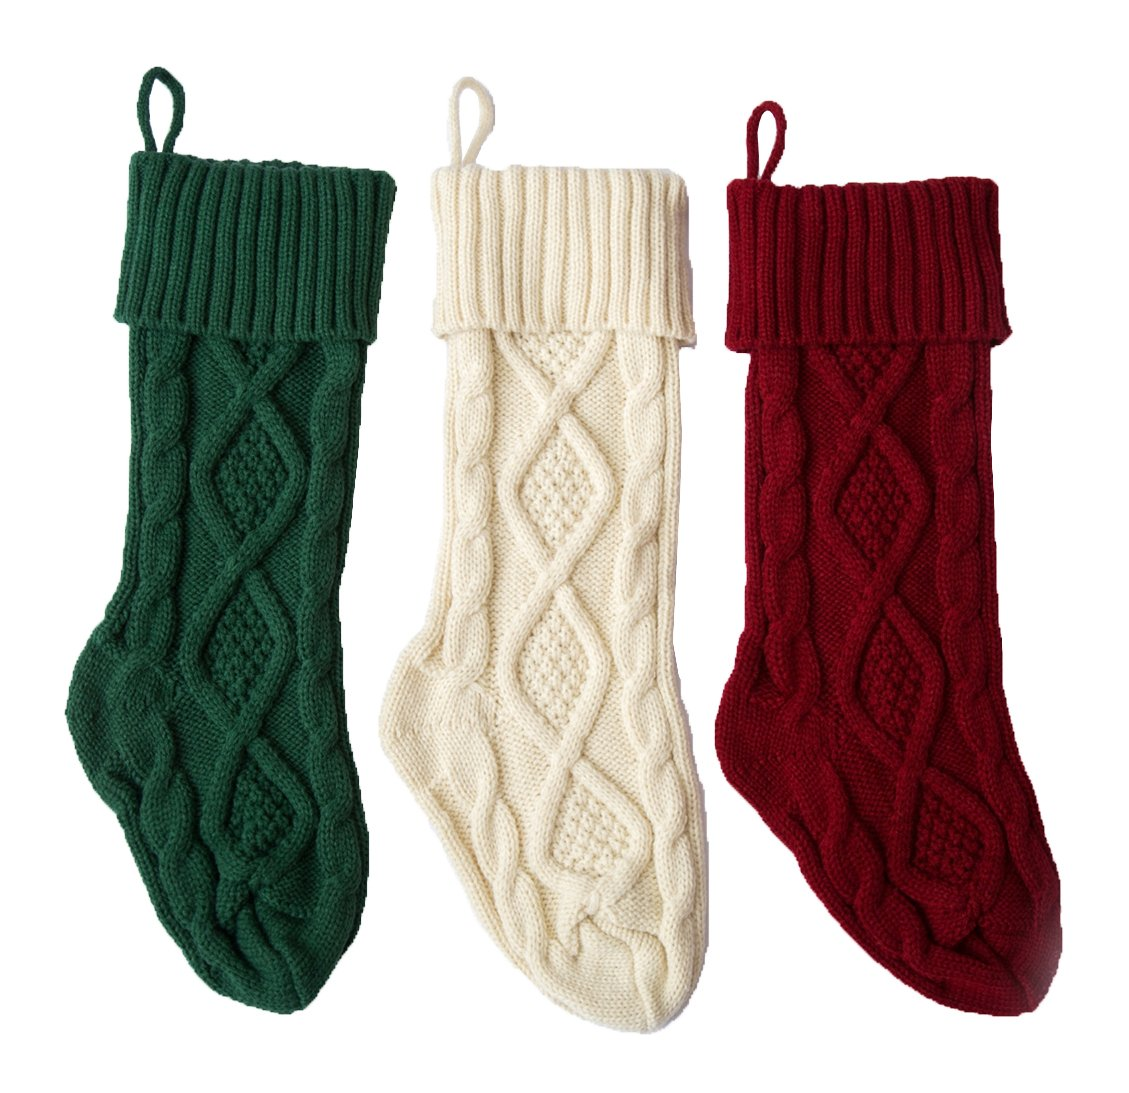 SherryDC Crochet Cable Knit Christmas Stockings Hanging Socks Decoration, Set of 3